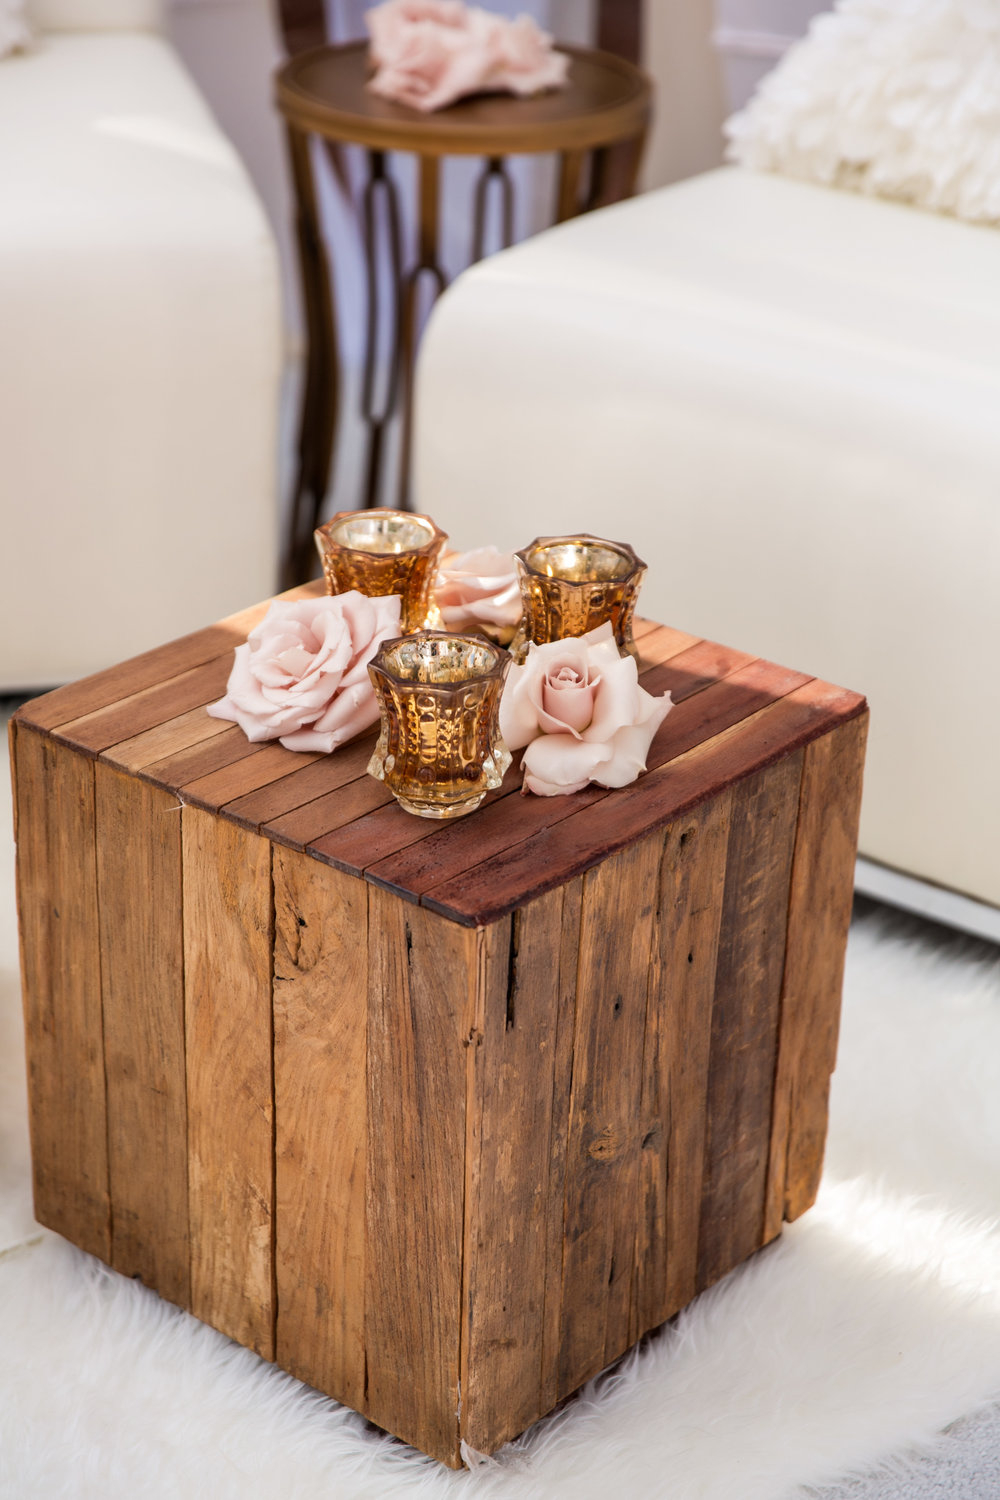 Wooden tables on fur rugs with mercury glass candle holders. Wedding Planning by  Andrea Eppolito Events   ·  Photography by  Shandro Photo    ·  Wedding Venue  Four Seasons Las Vegas   ·  Floral and Decor by  Destination by Design   ·  Chandeliers and Lighting by  LED Unplugged